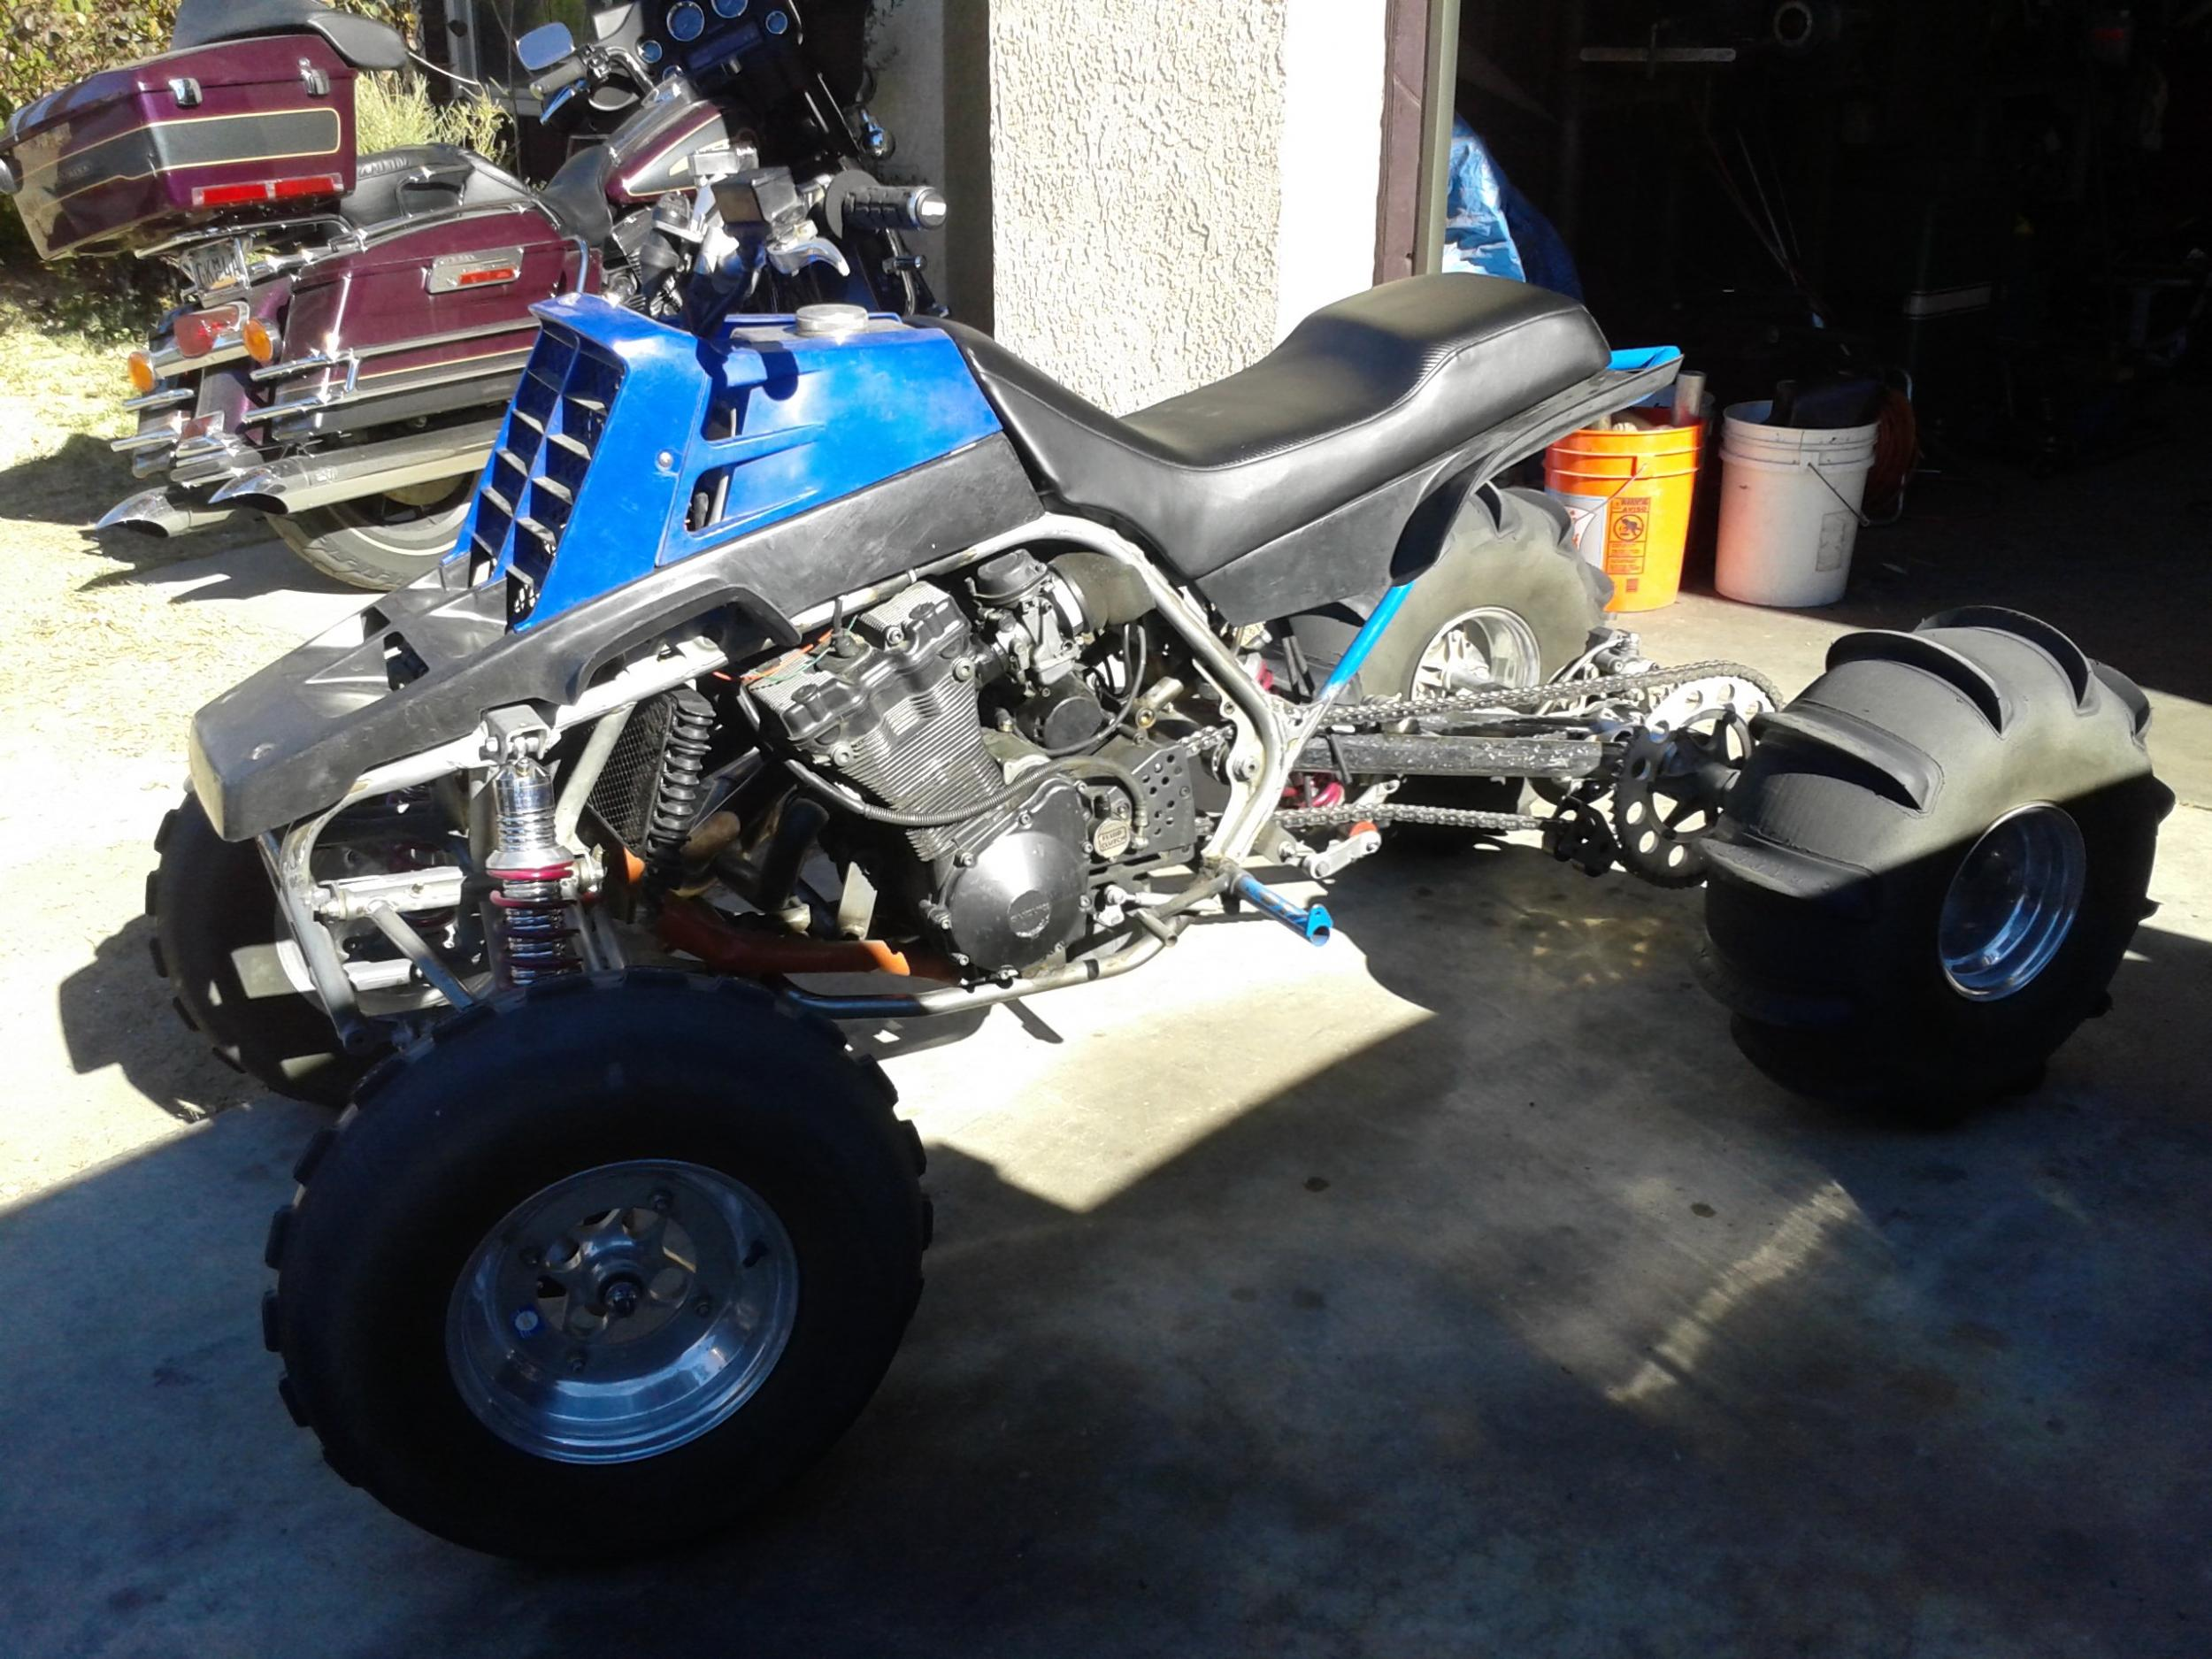 banshee with gsxr 1200 motor - ATV's/ Motorcycles for sale